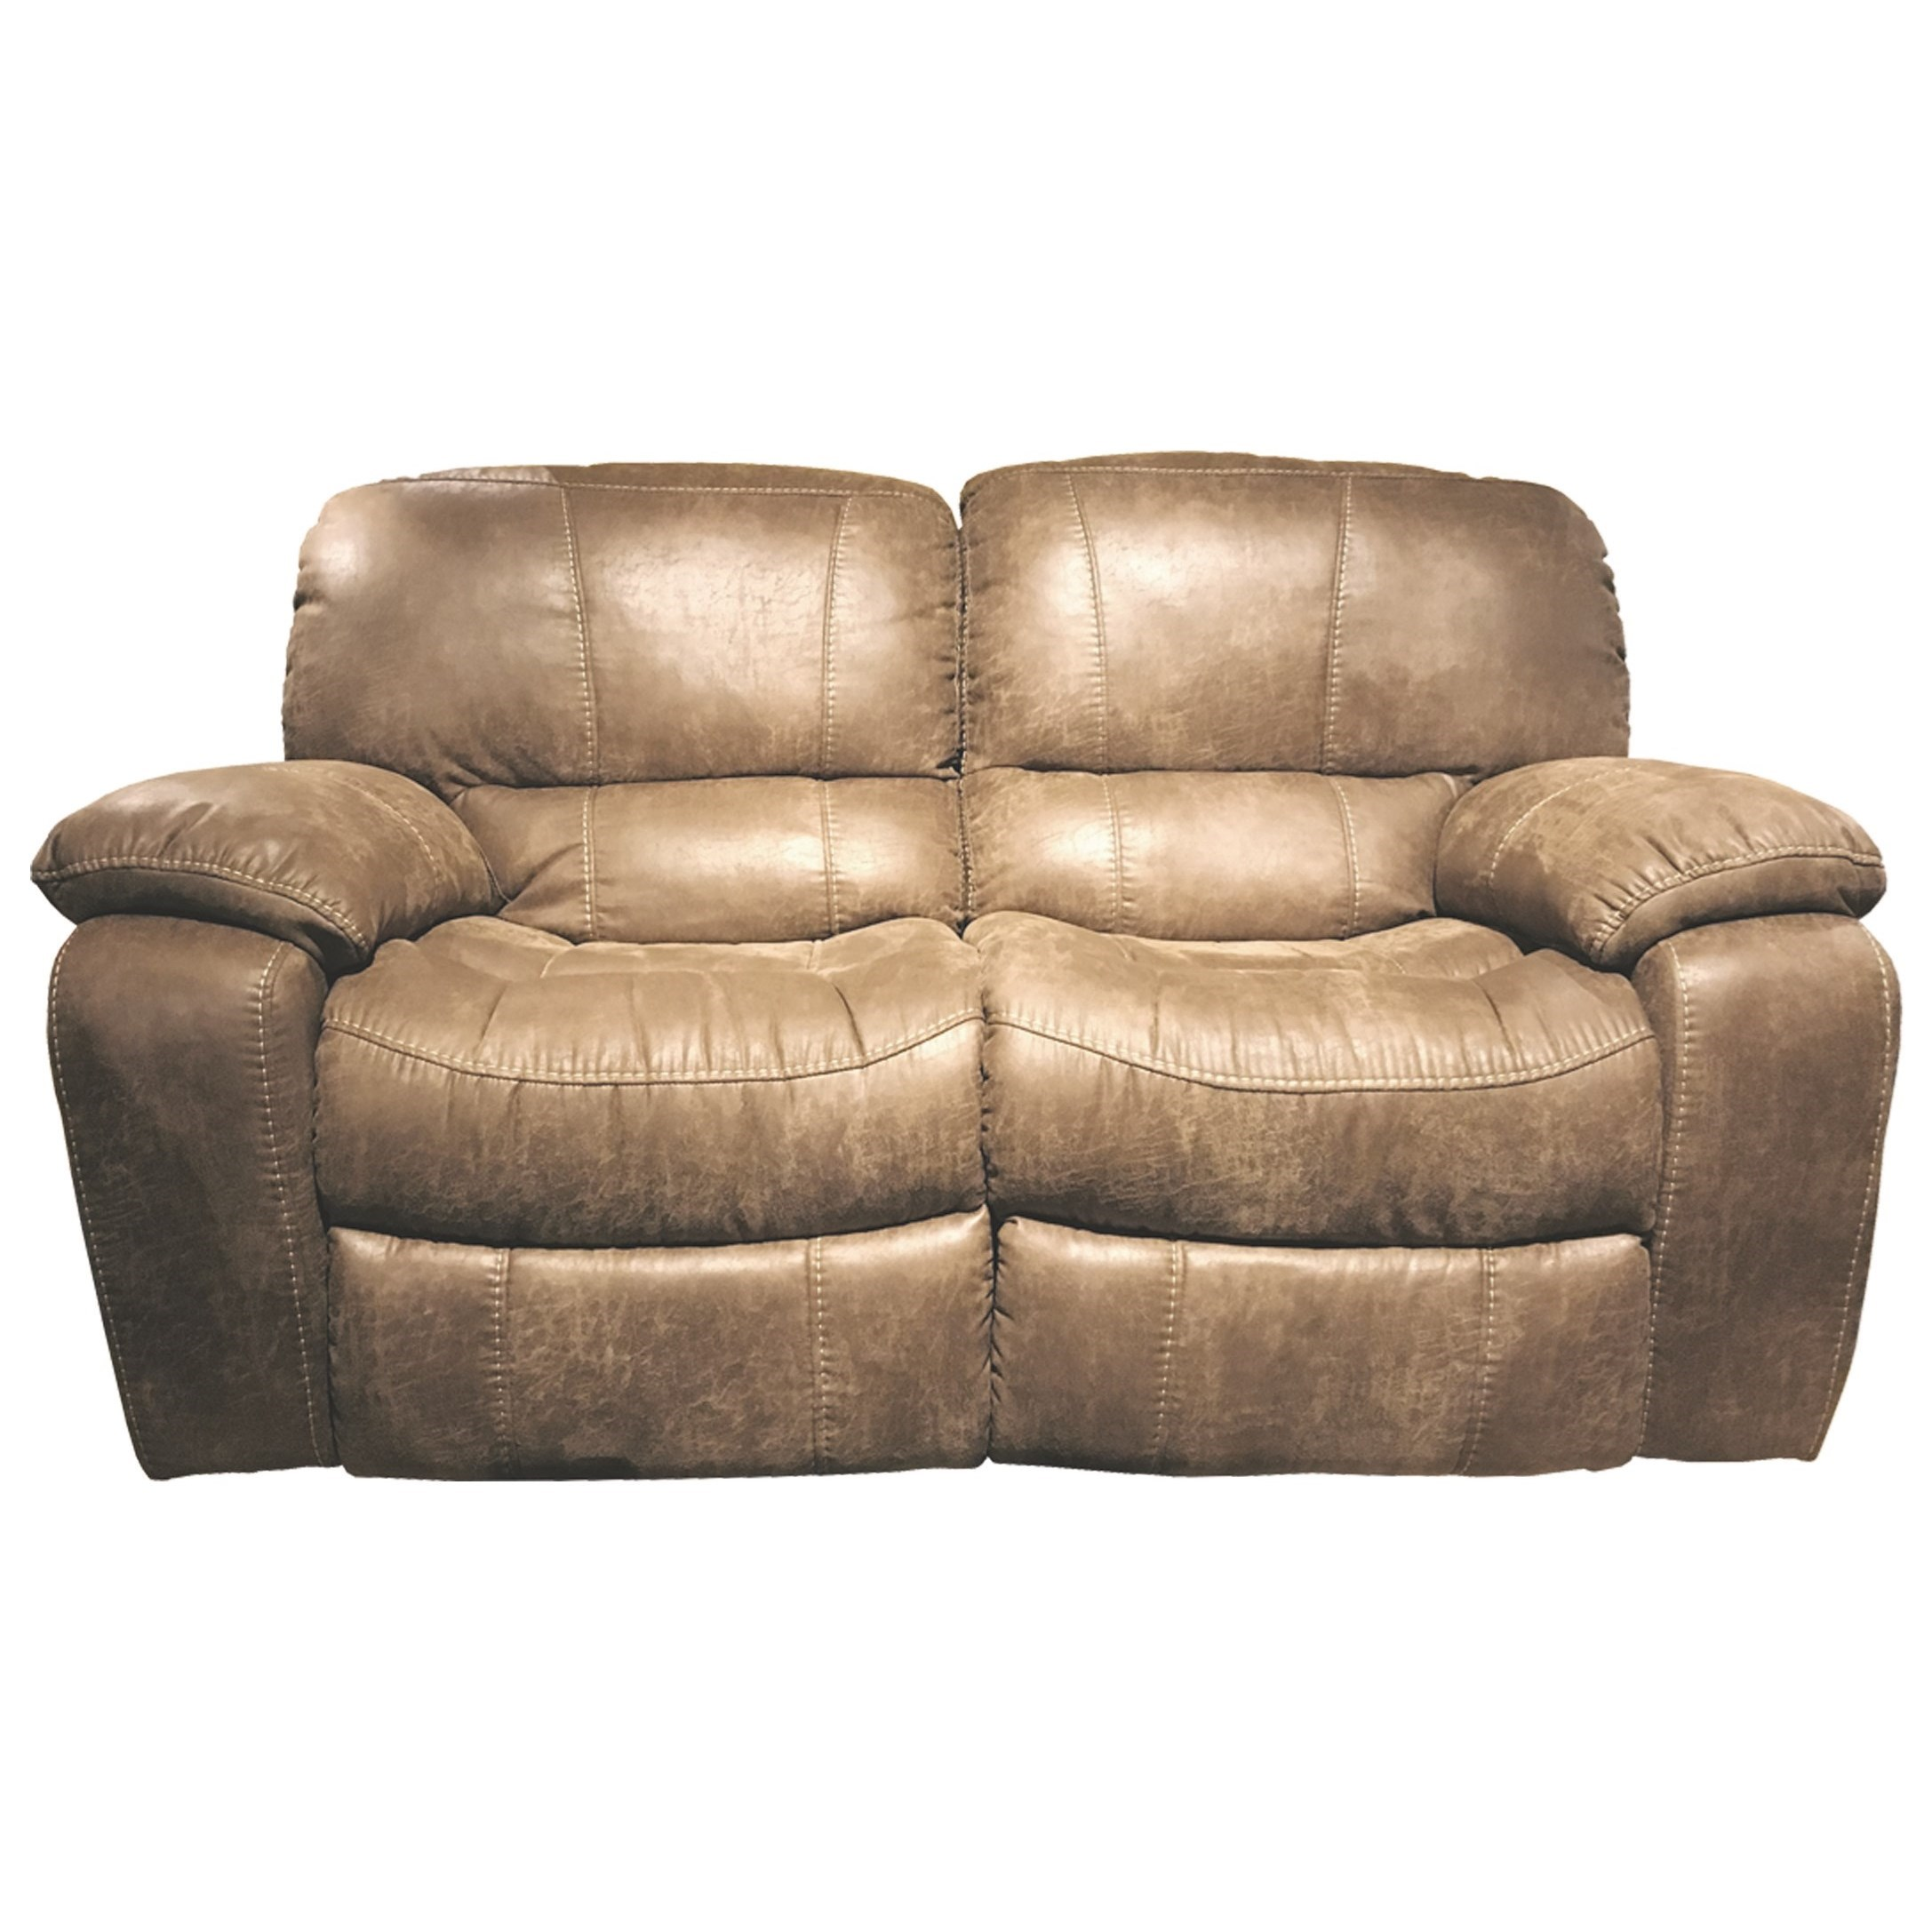 Picture of: Dual Reclining Love Seat With Pillow Arms Sadler S Home Furnishings Reclining Loveseats